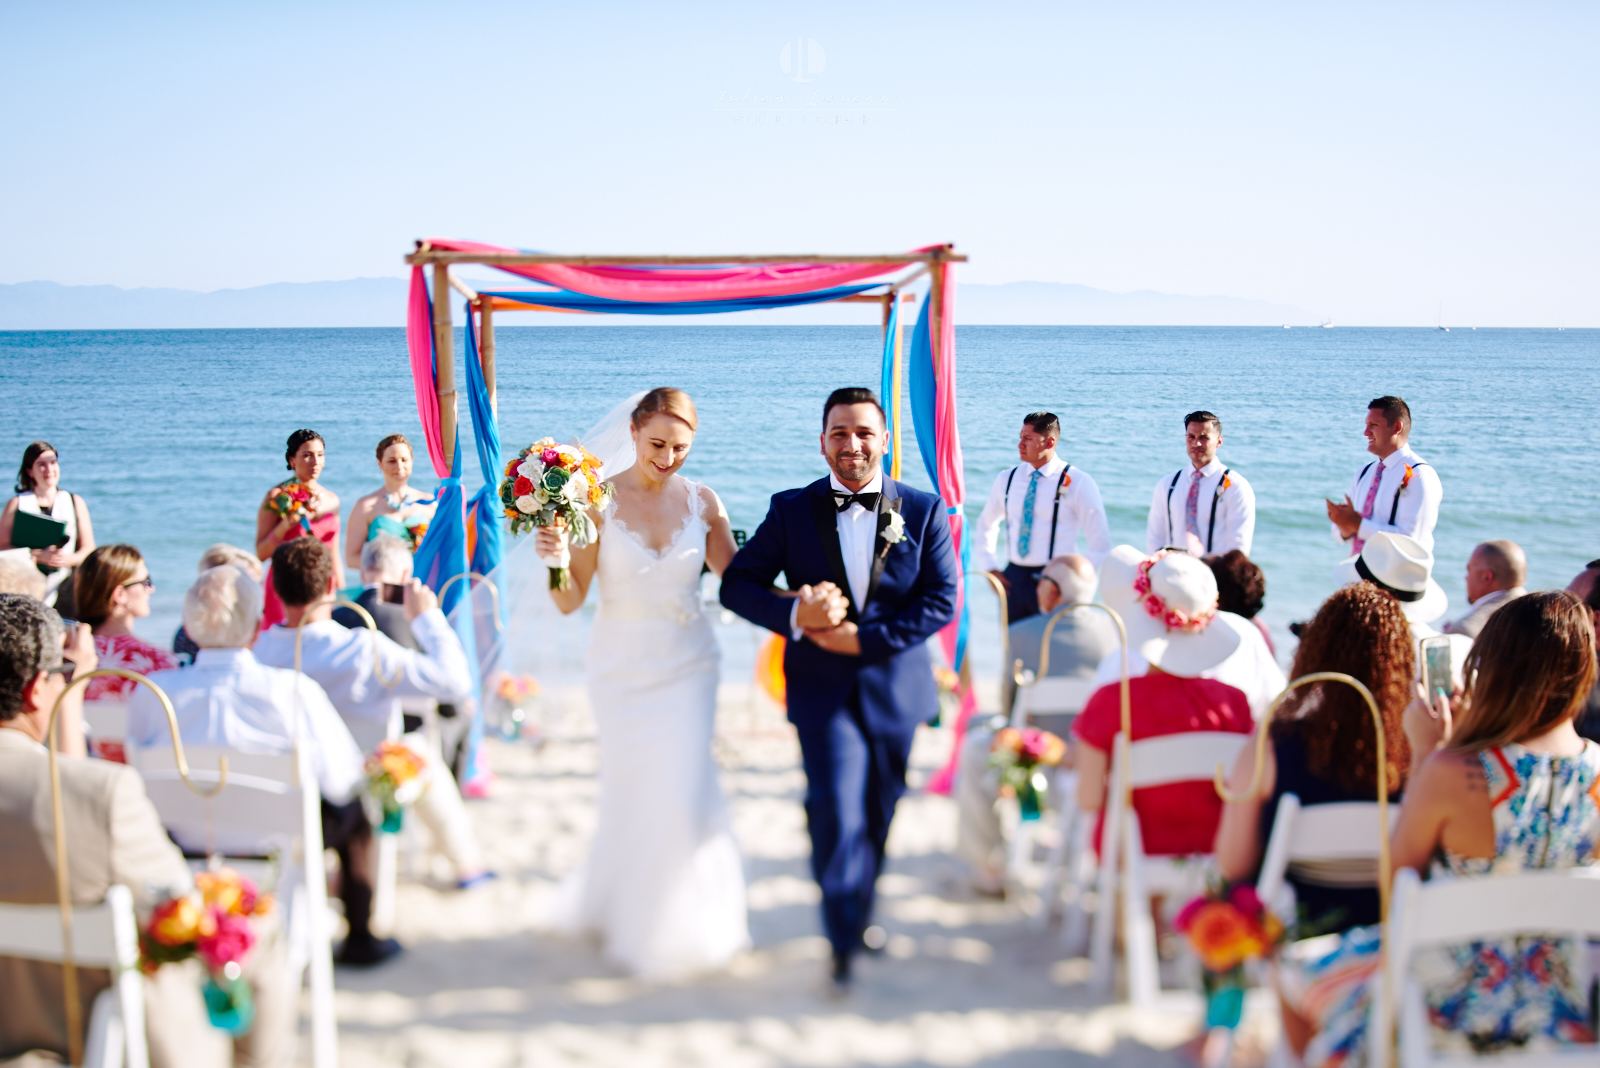 The 21 Best Wedding Venues in Puerto Vallarta and surroundings